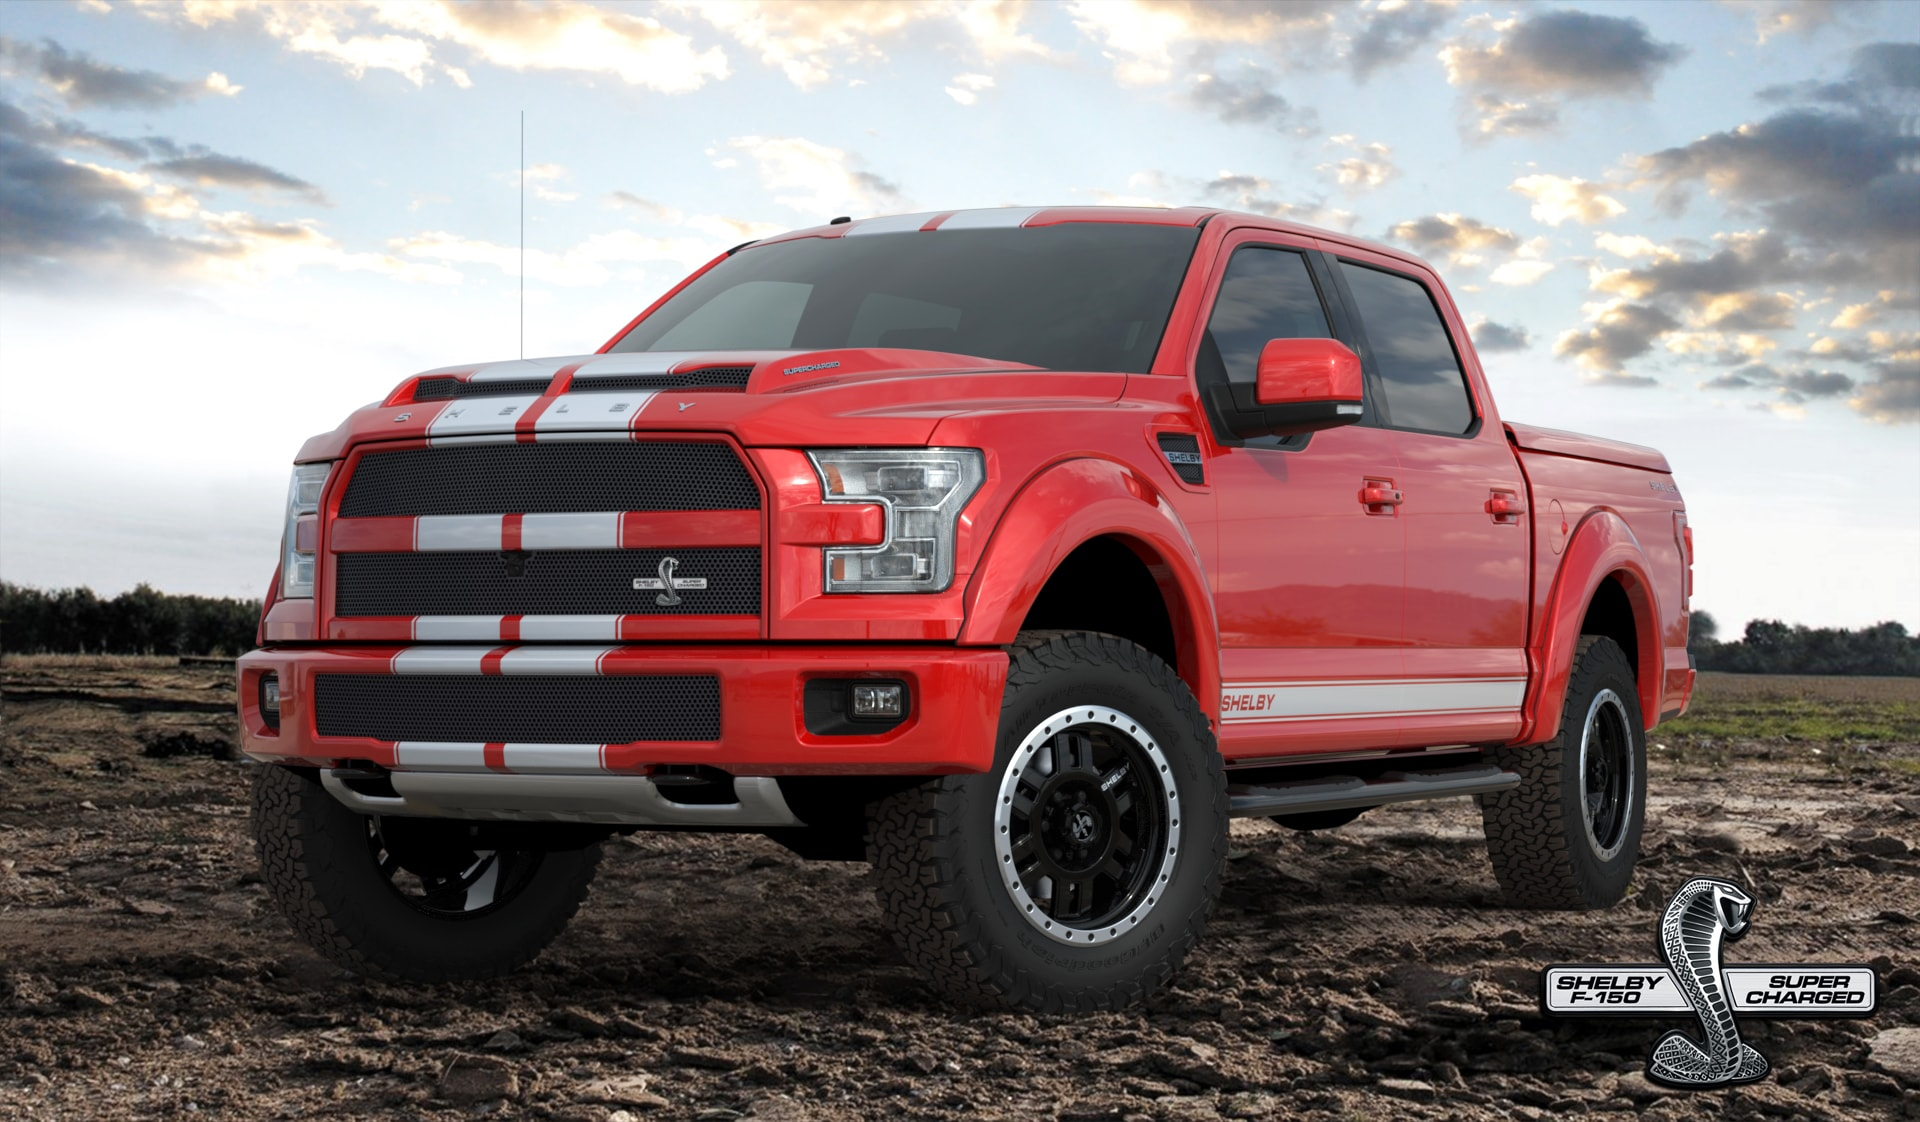 2016 Shelby F-150 Red